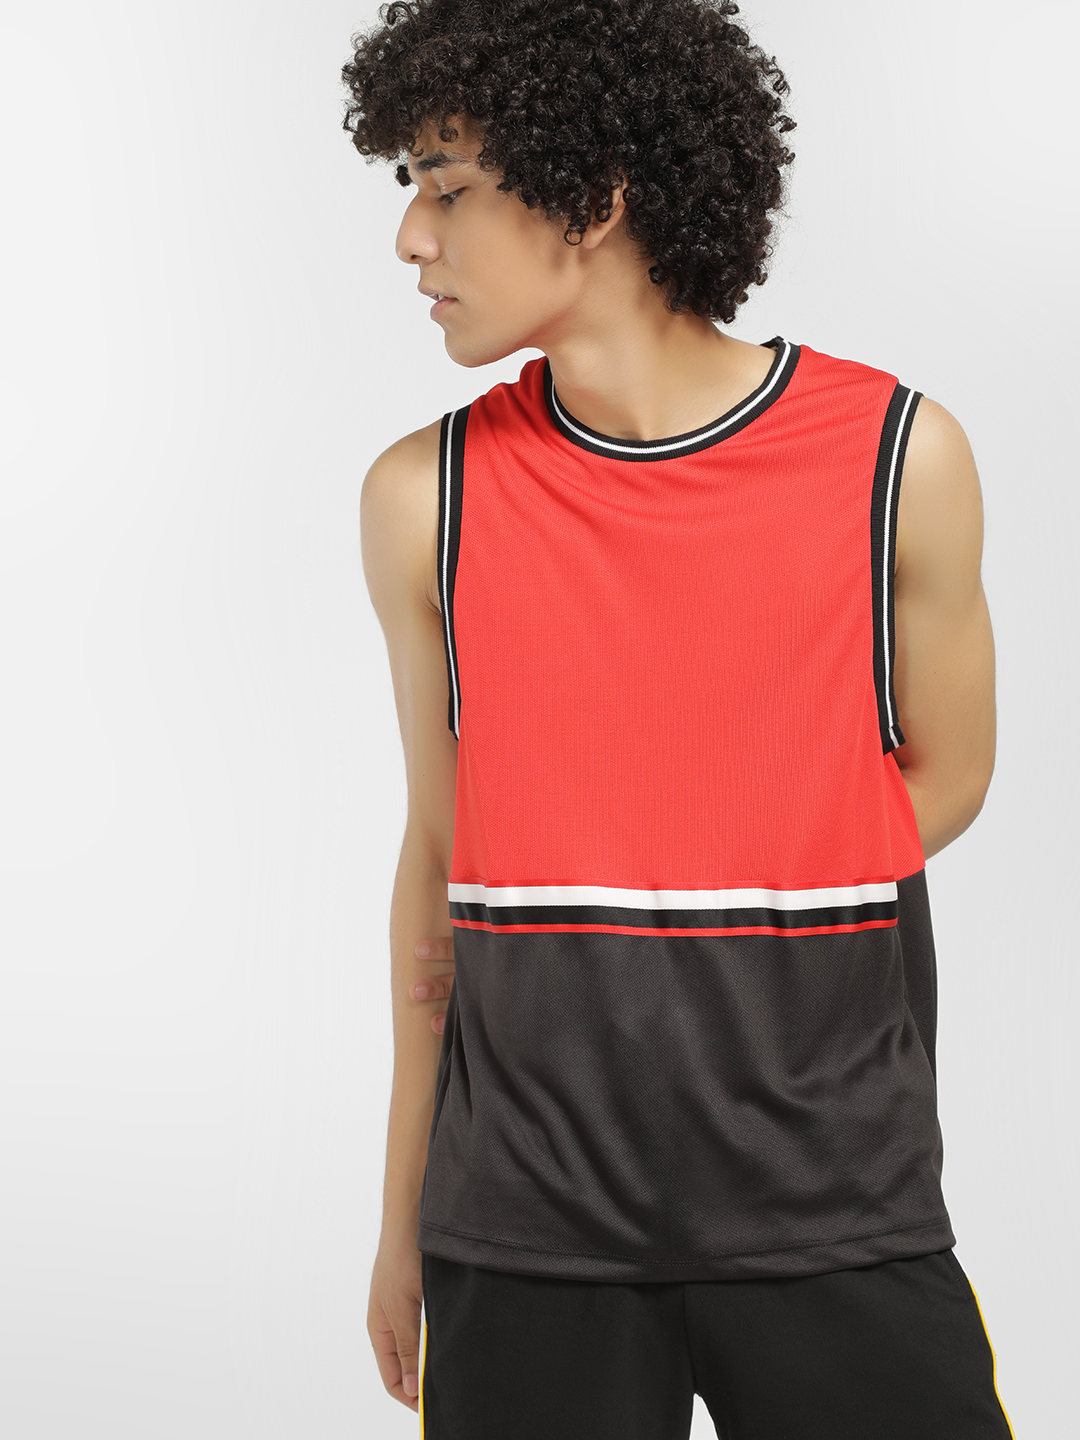 KOOVS Red Colour Block Mesh Sports Vest 1